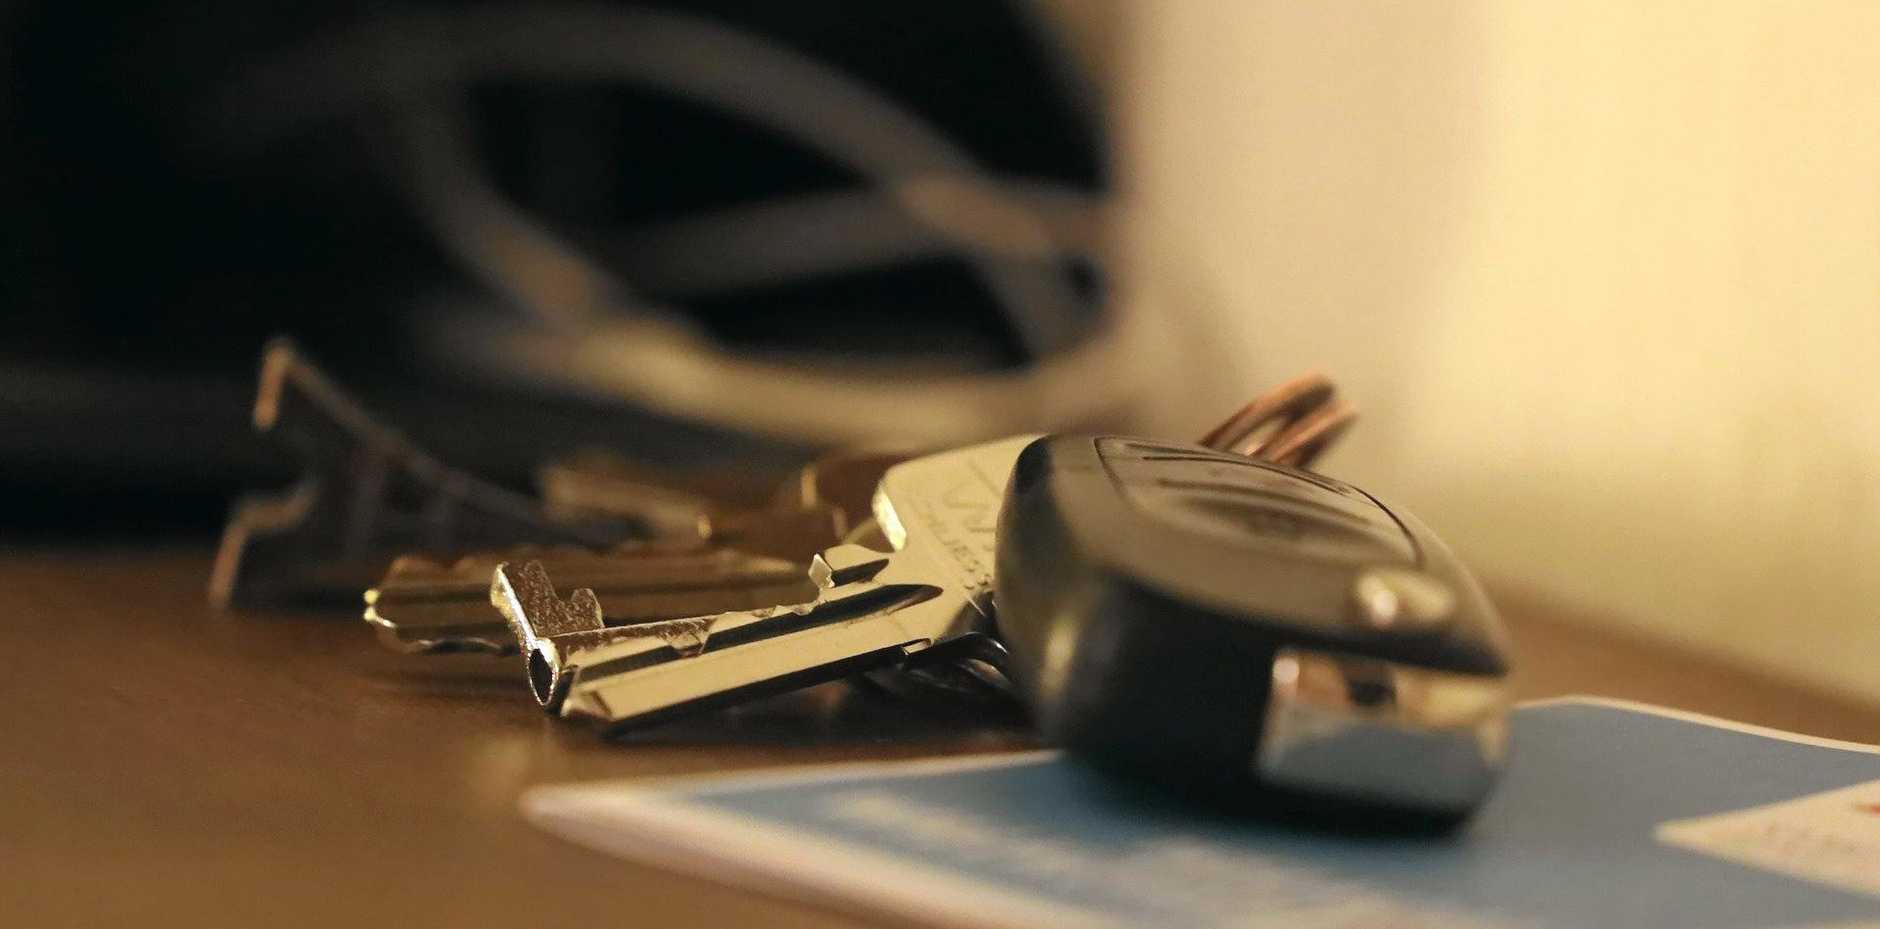 The statistics have been published by the National Motor Vehicle Theft Reduction Council.